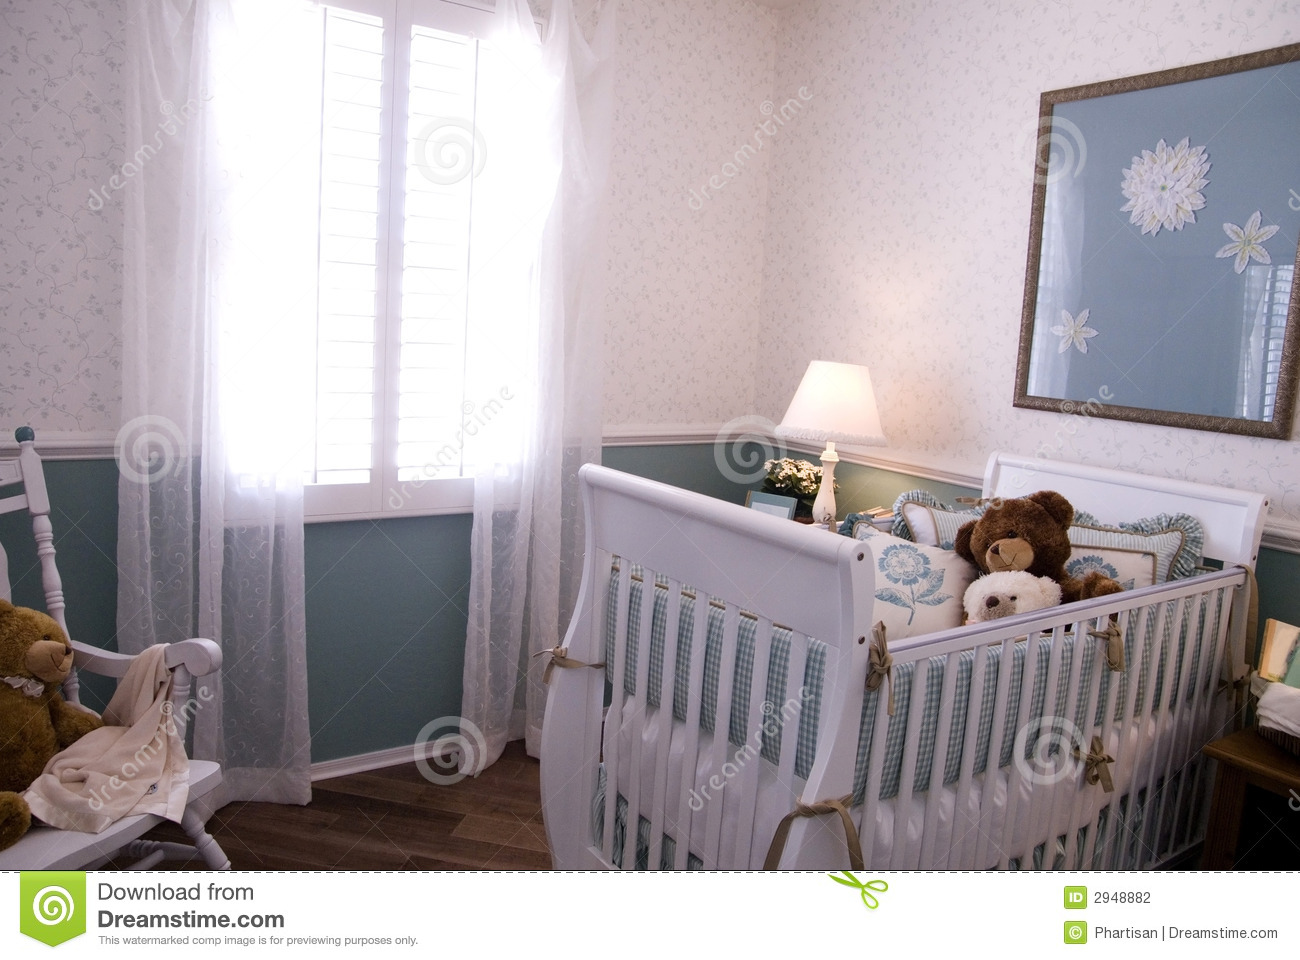 A Crib In A Baby Room Interior Stock Photo Image 2948882